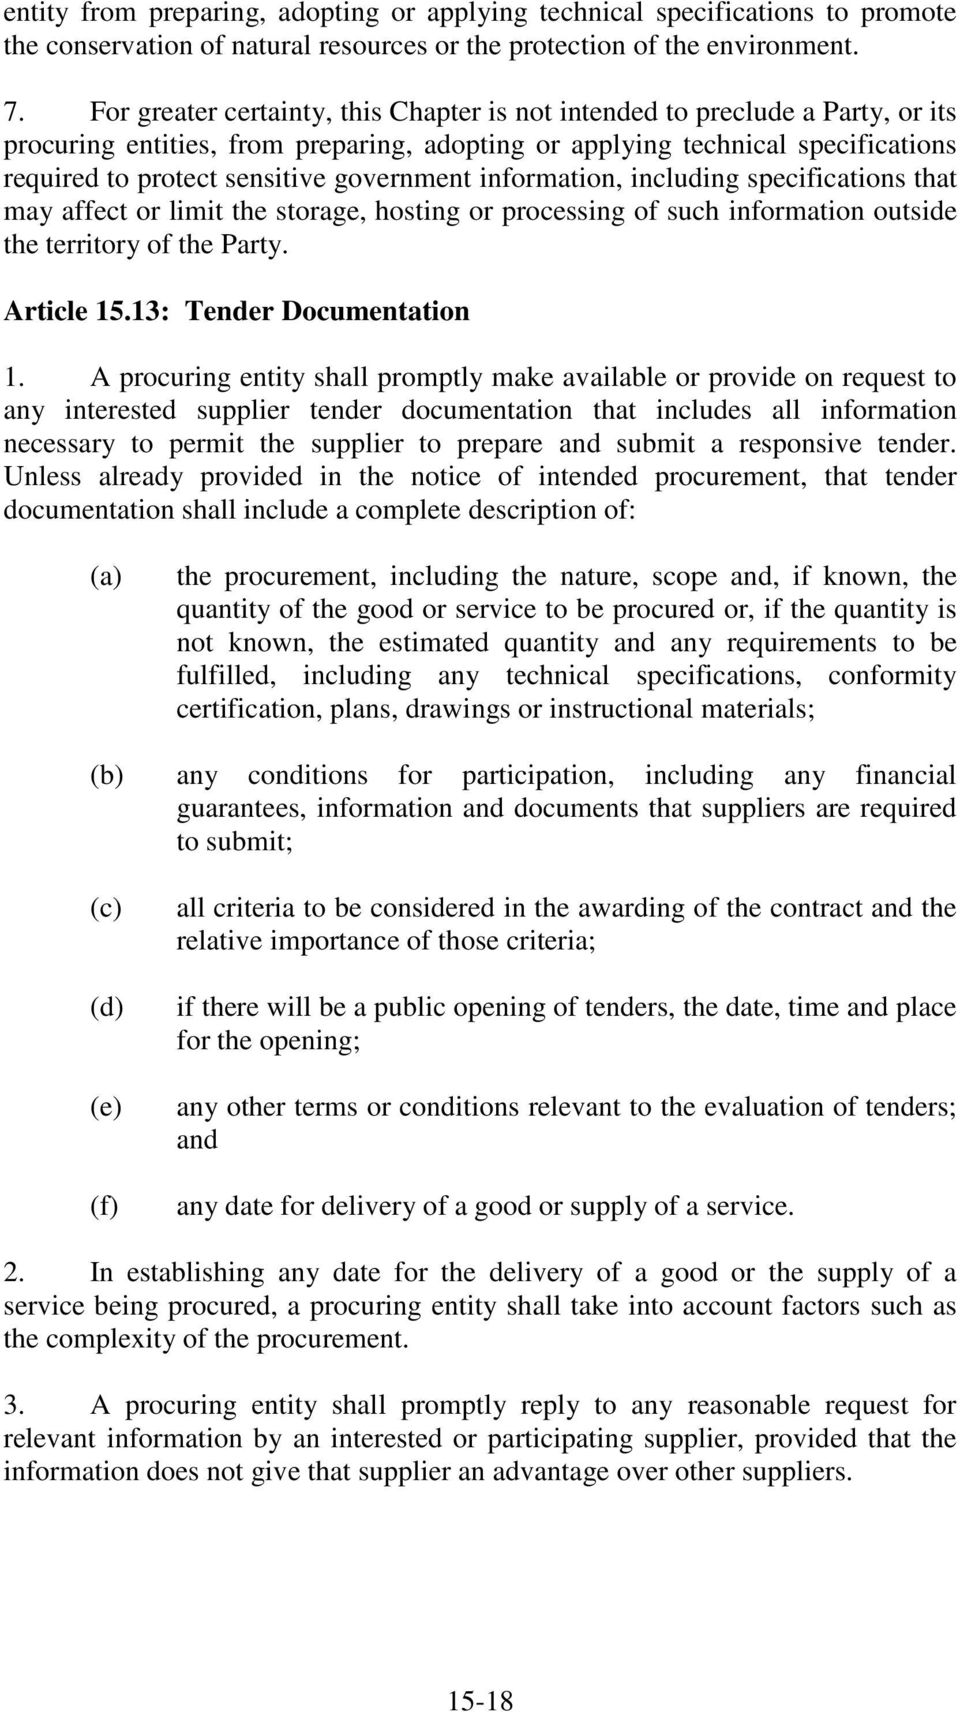 government information, including specifications that may affect or limit the storage, hosting or processing of such information outside the territory of the Party. Article 15.